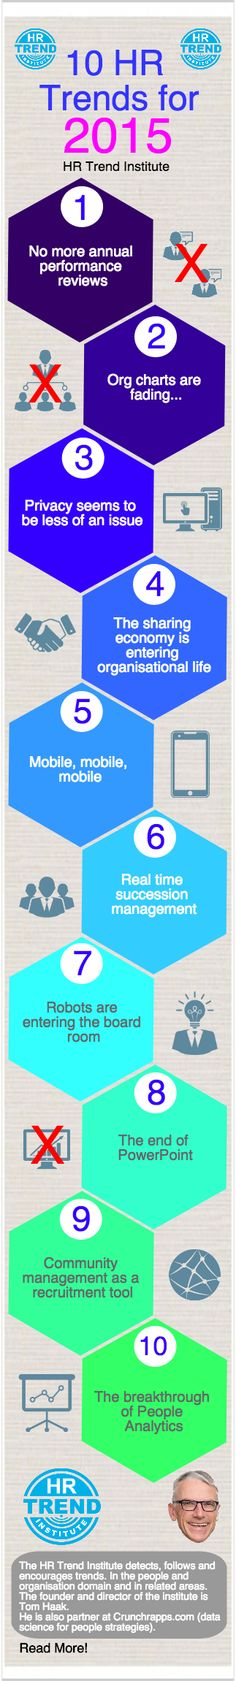 10 HR Trends for 2015, by the HR Trend Institute (http://hrtrendinstitute.com)